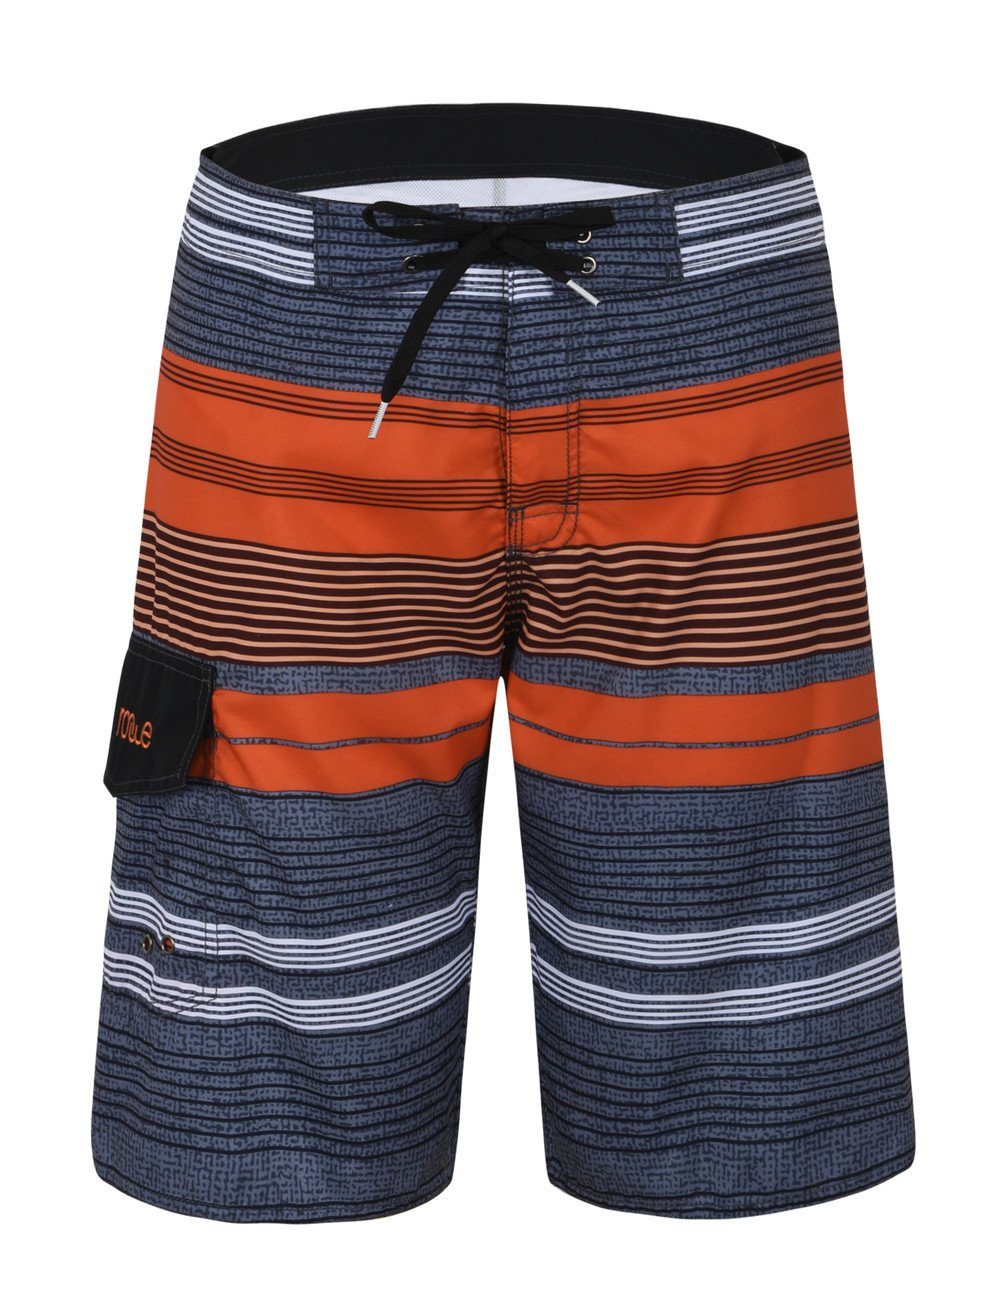 Nonwe Mens Stripe Quick Dry Board Shorts Orange Stripped 32